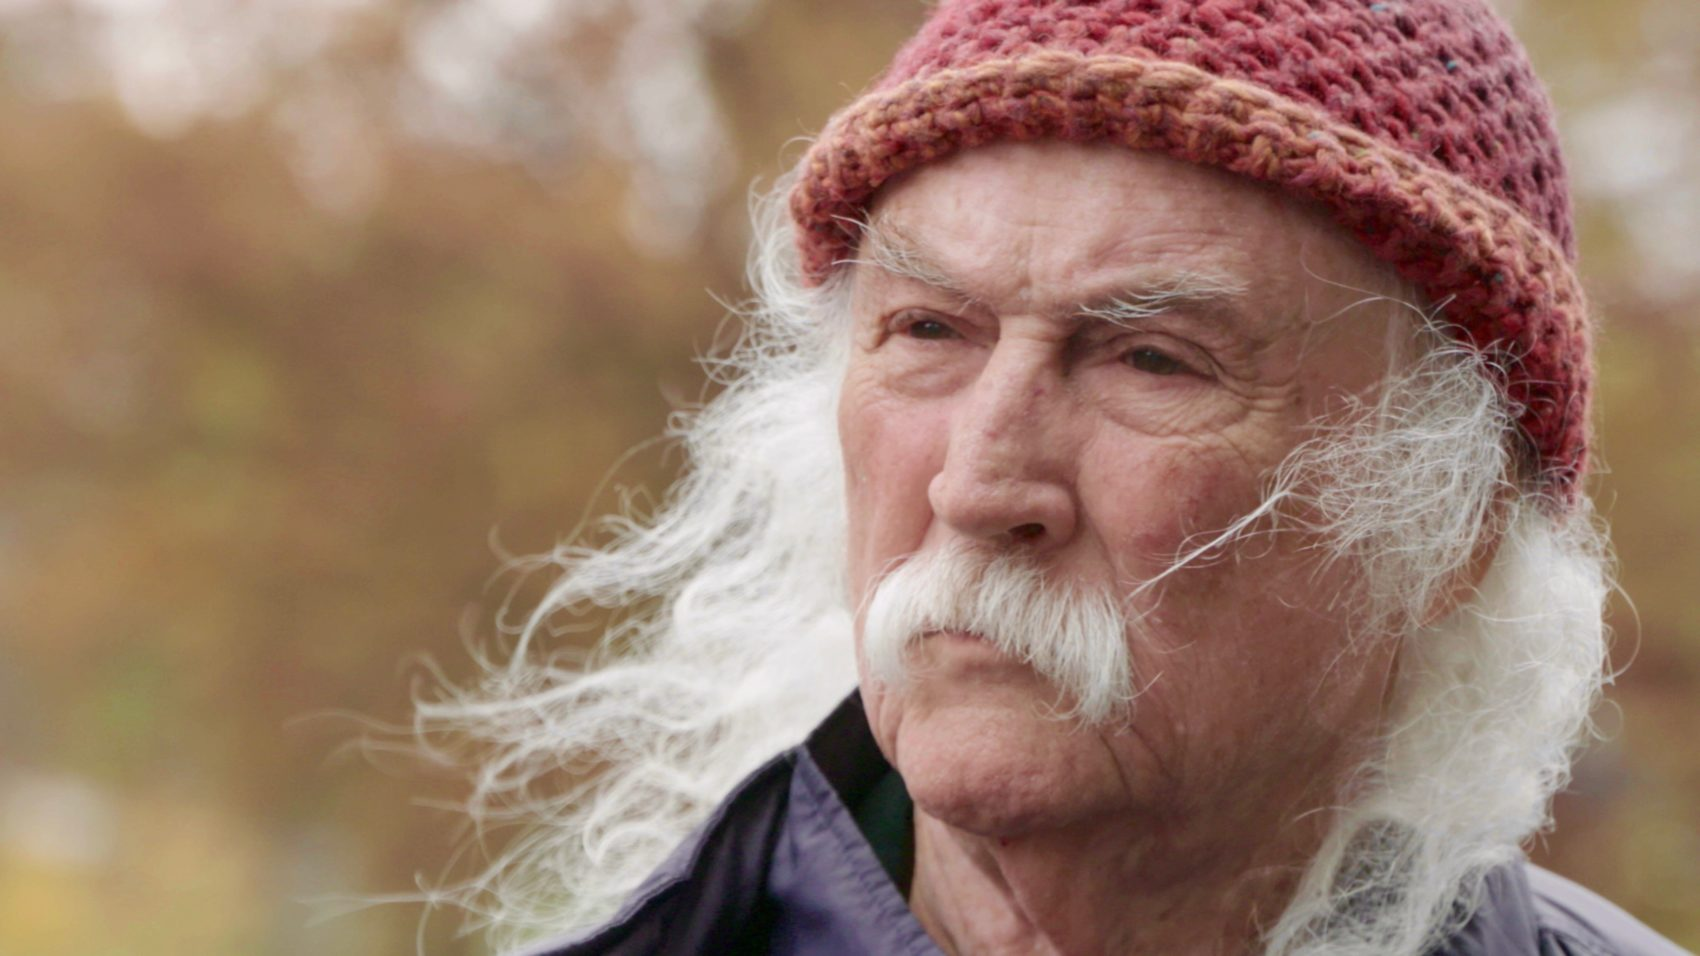 """I've hurt a lot of people. I've helped a lot more. I just have to be able to look at it and understand it and learn from it,"" David Crosby tells Here & Now. The musician's life is the focus of the new documentary ""David Crosby: Remember My Name."" (Courtesy of Sony Pictures Classics)"